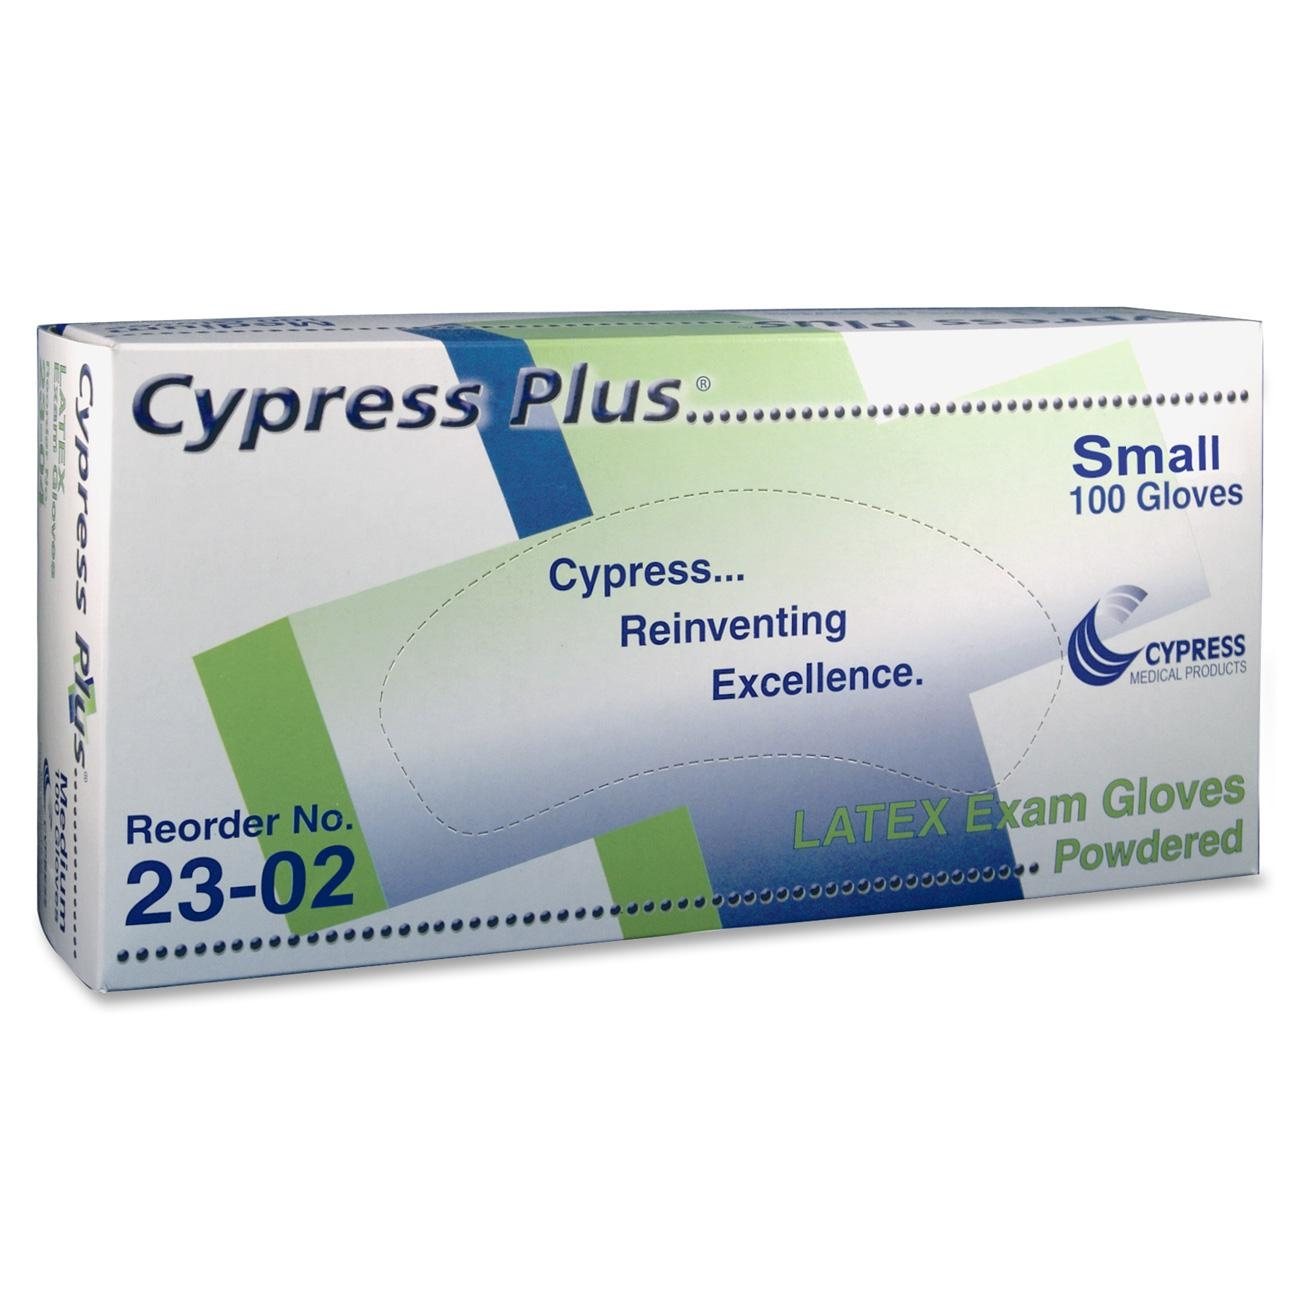 Cypress Plus Cypress Plus Lightly Powdered Smooth Latex Examination Gloves - Latex - Powdered - 100/box (mcpp049302)